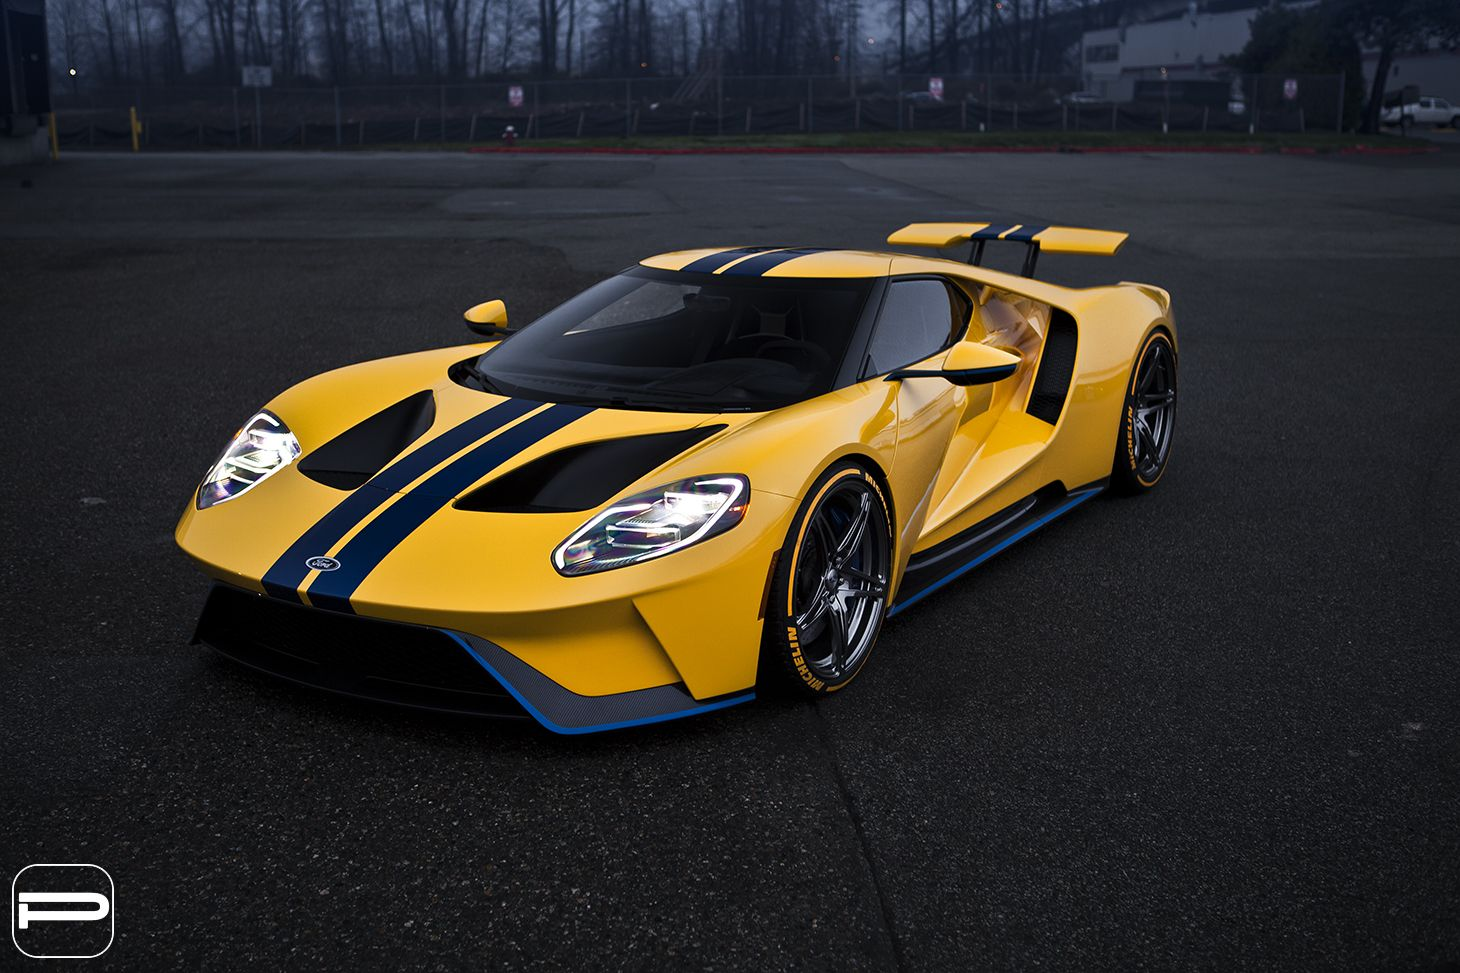 Ford Gt On Custom Wheels Is Pure Wallpaper Material Carscoops Ford Gt Luxury Car Photos Super Cars